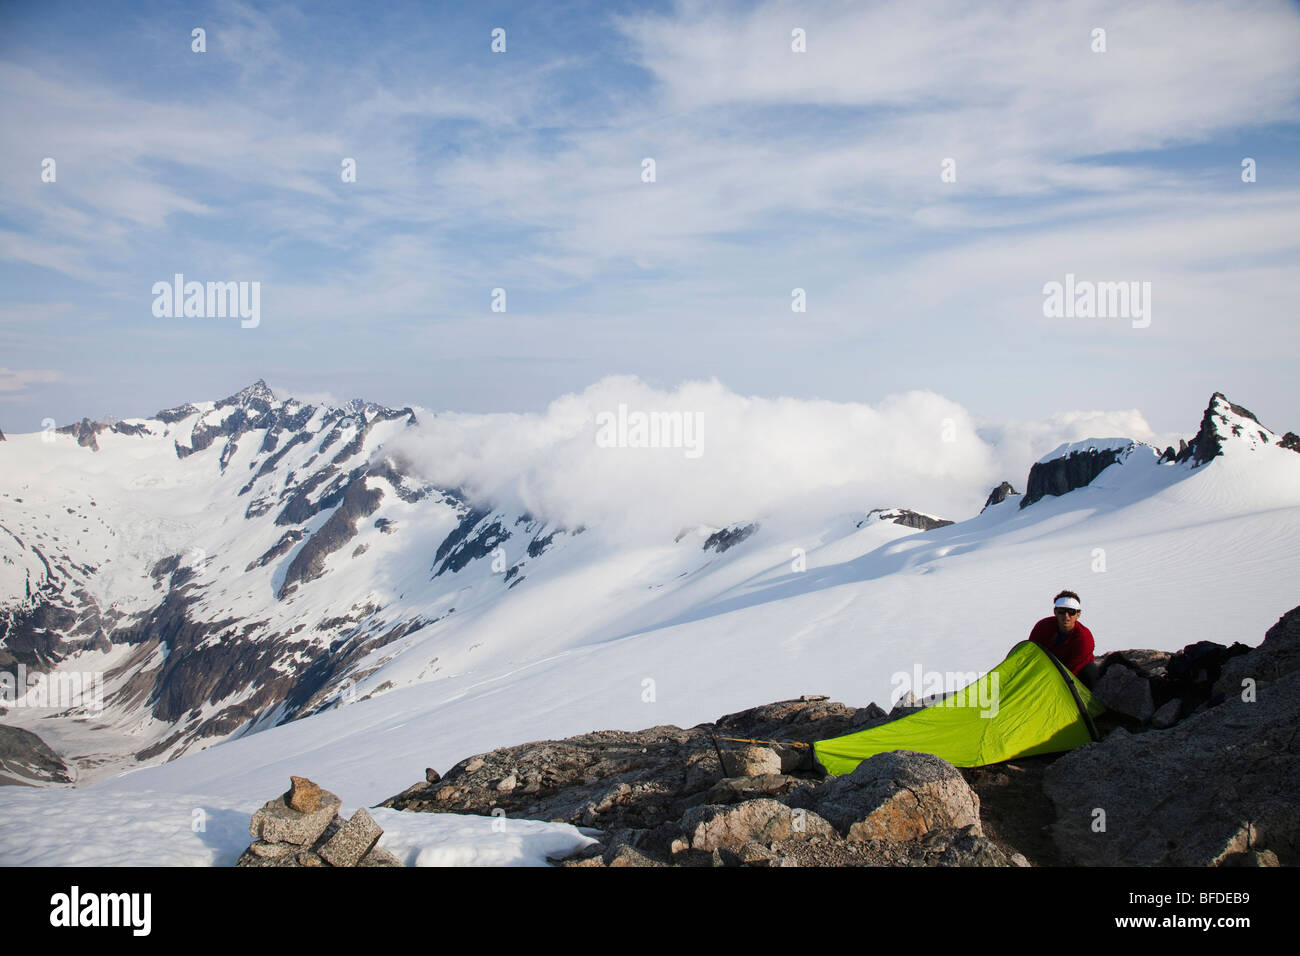 A young man sets up his bivy sac on a rock outcrop on a glacier while climbing a jagged mountain. - Stock Image